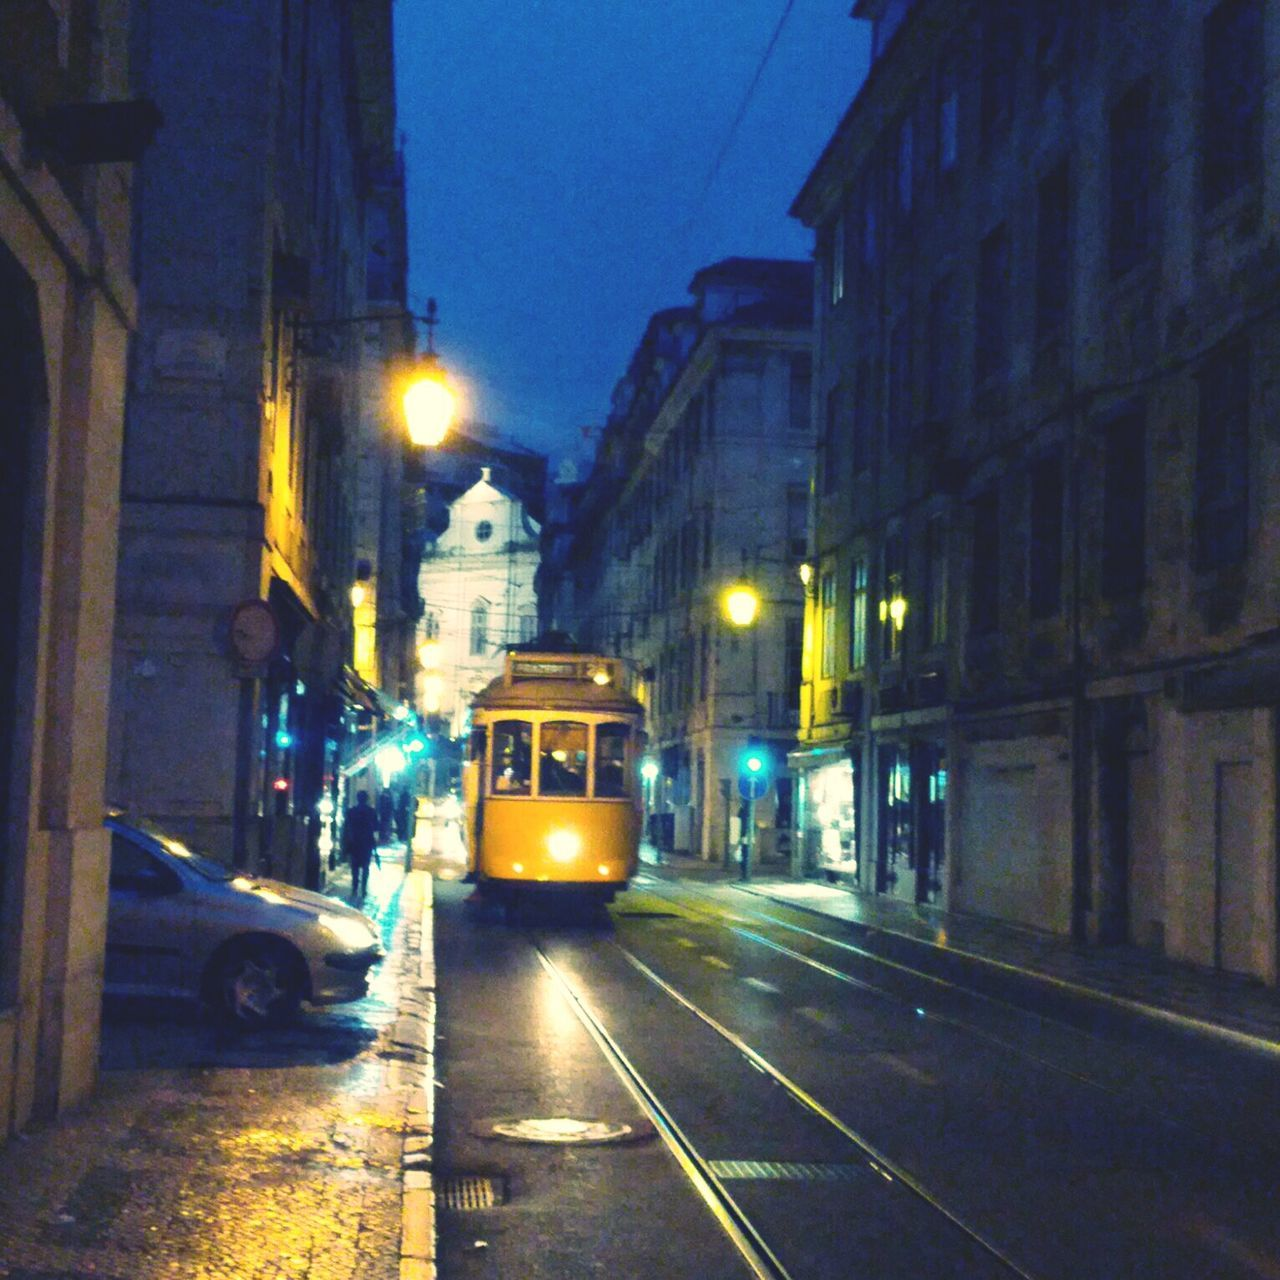 My ride is here. Urban Landscape Public Transport Electrico Lisboa